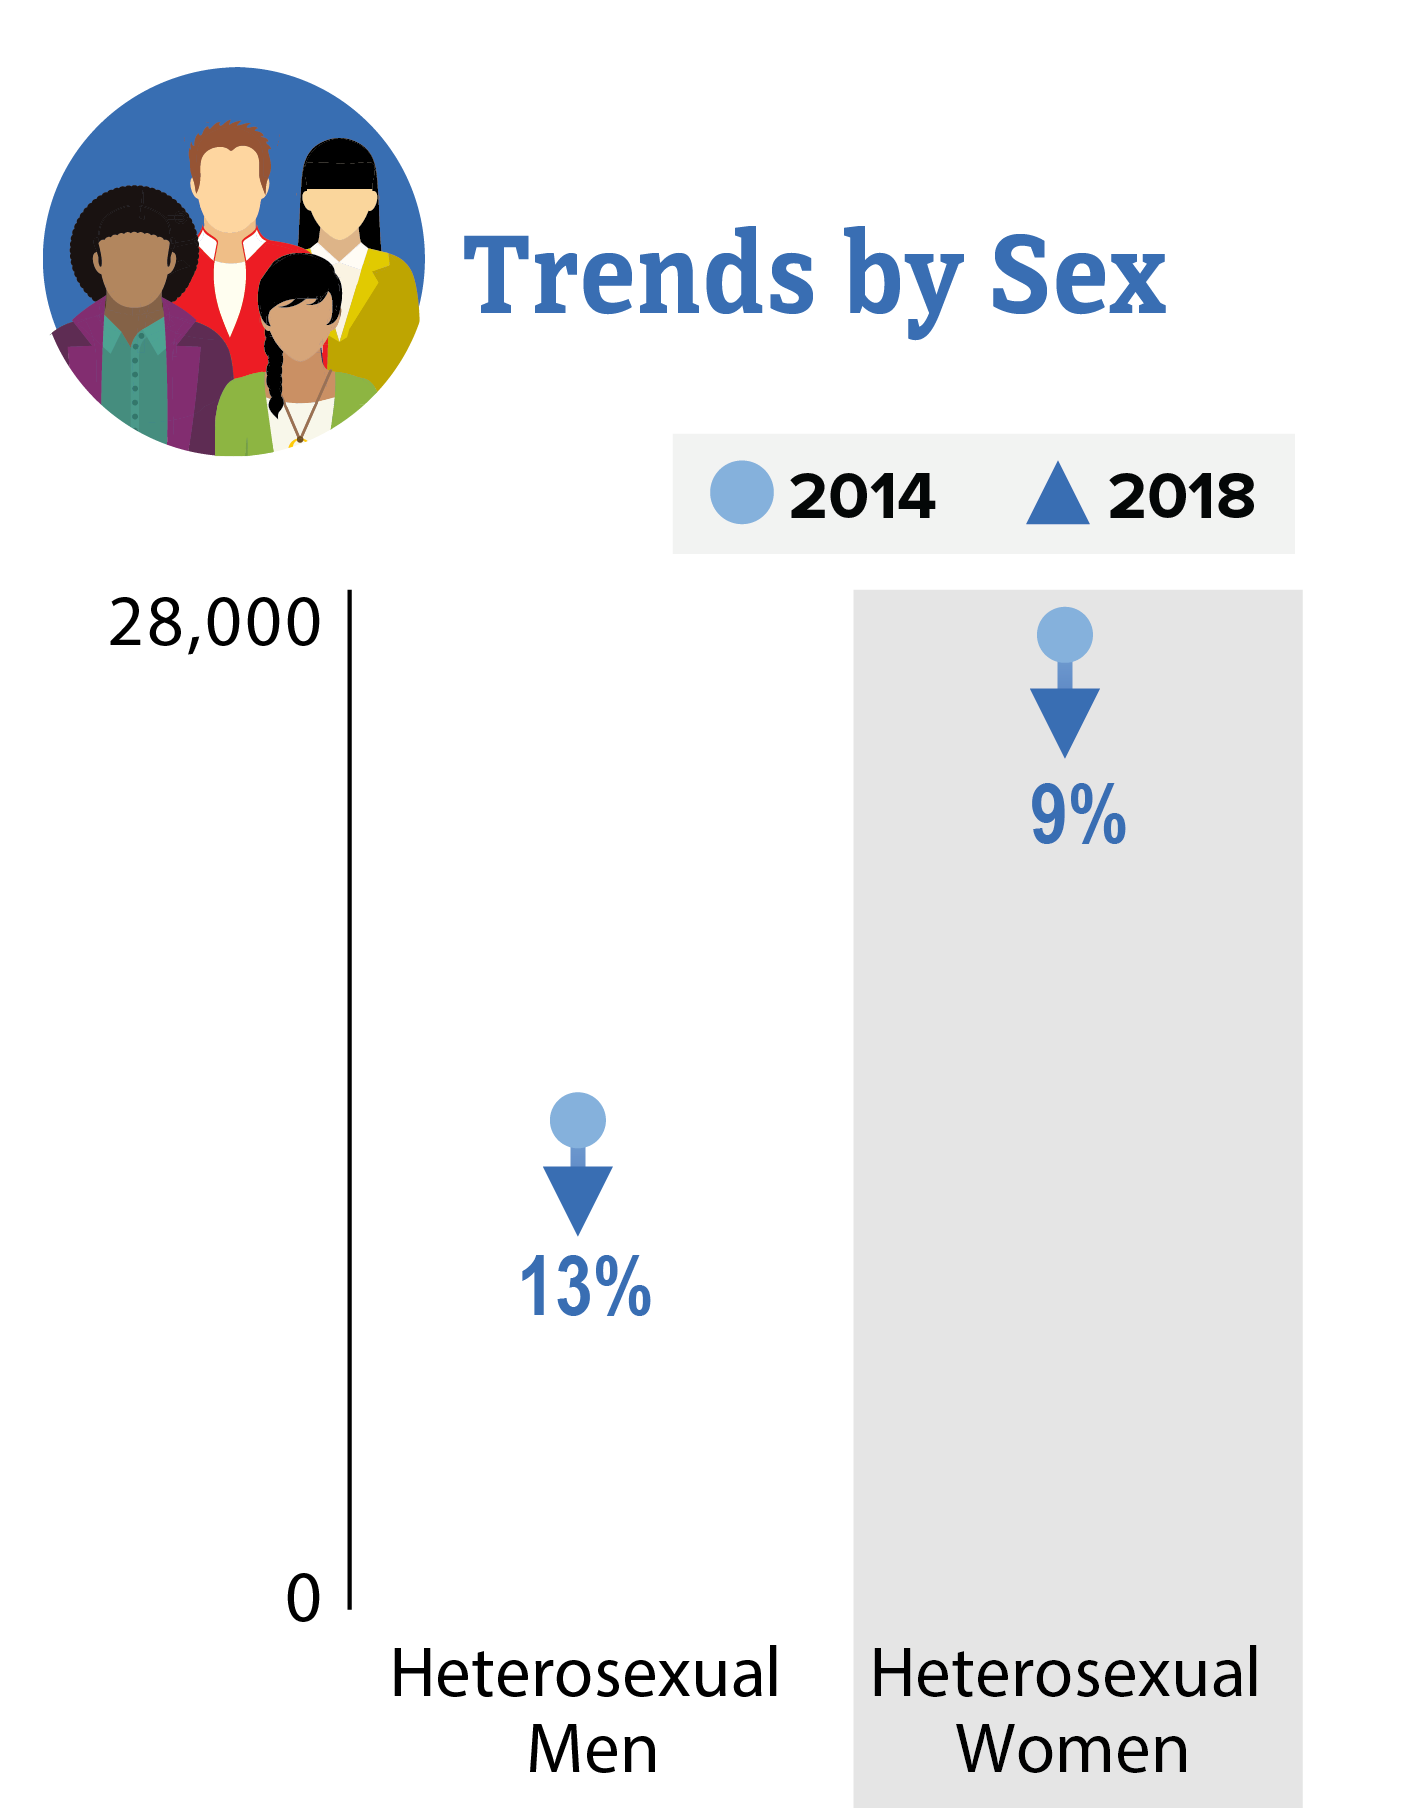 This trend chart shows HIV diagnoses among heterosexuals in the US and dependent areas from 2014 to 2018. By sex, heterosexual men decreased 13% and heterosexual women decreased 9%.